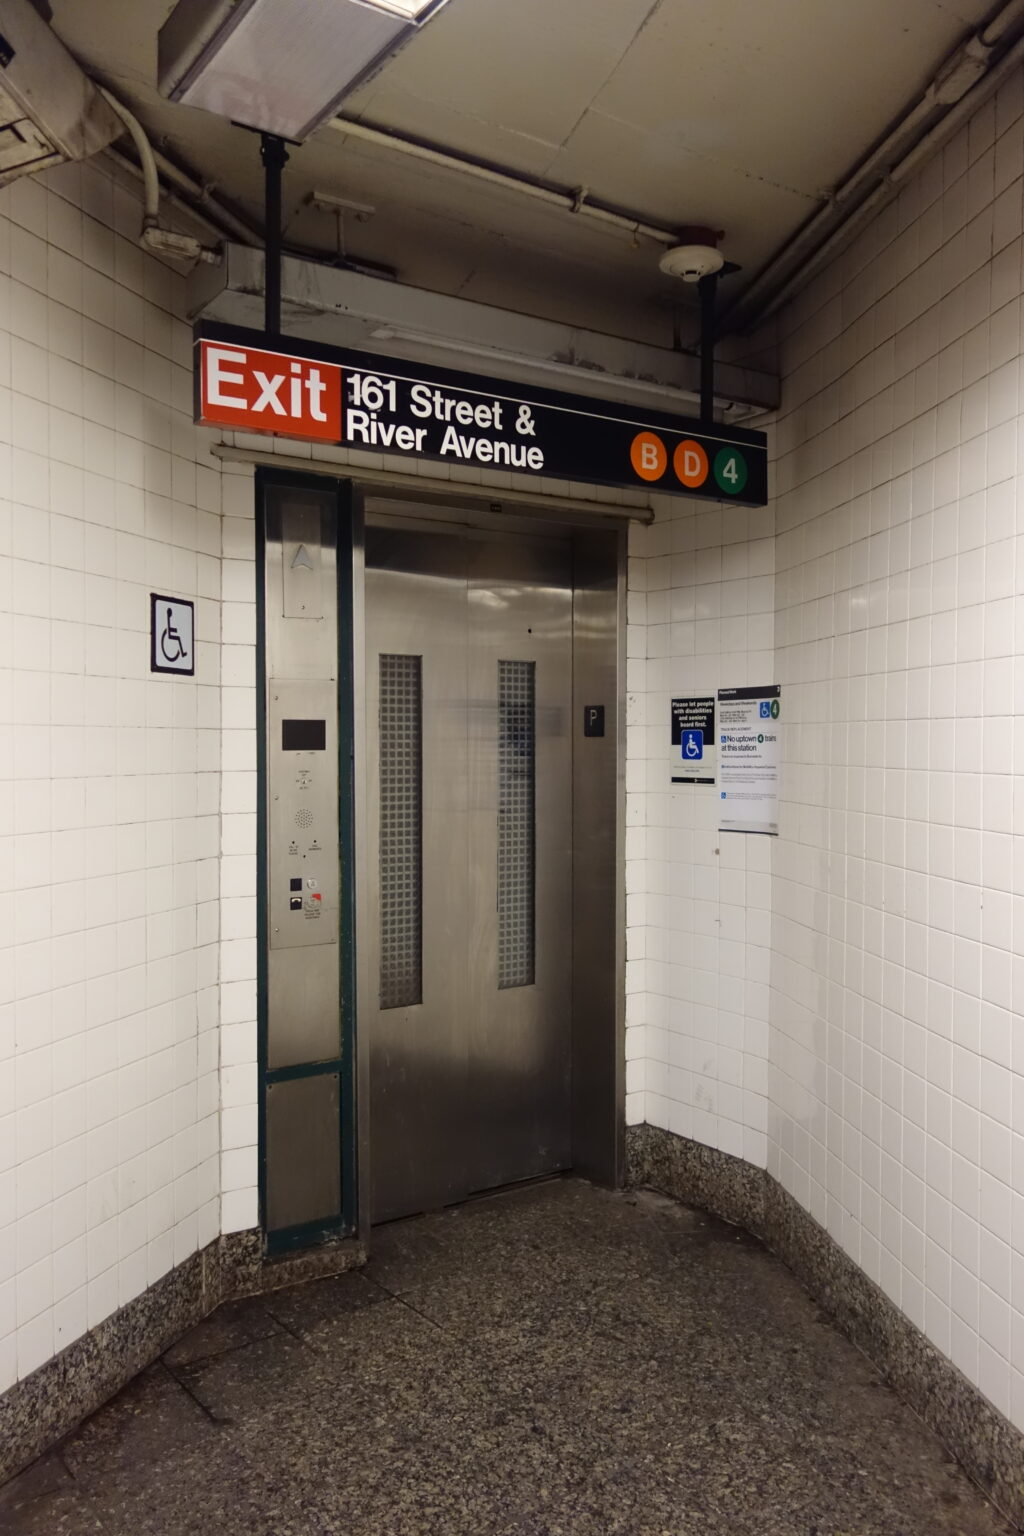 Out-of-service elevators are just one of many reasons why disabled people have asked for the kind of work-from-home accommodations many people have now. Source: Tdorante10, CC BY-SA 4.0, https://commons.wikimedia.org/w/index.php?curid=68291195